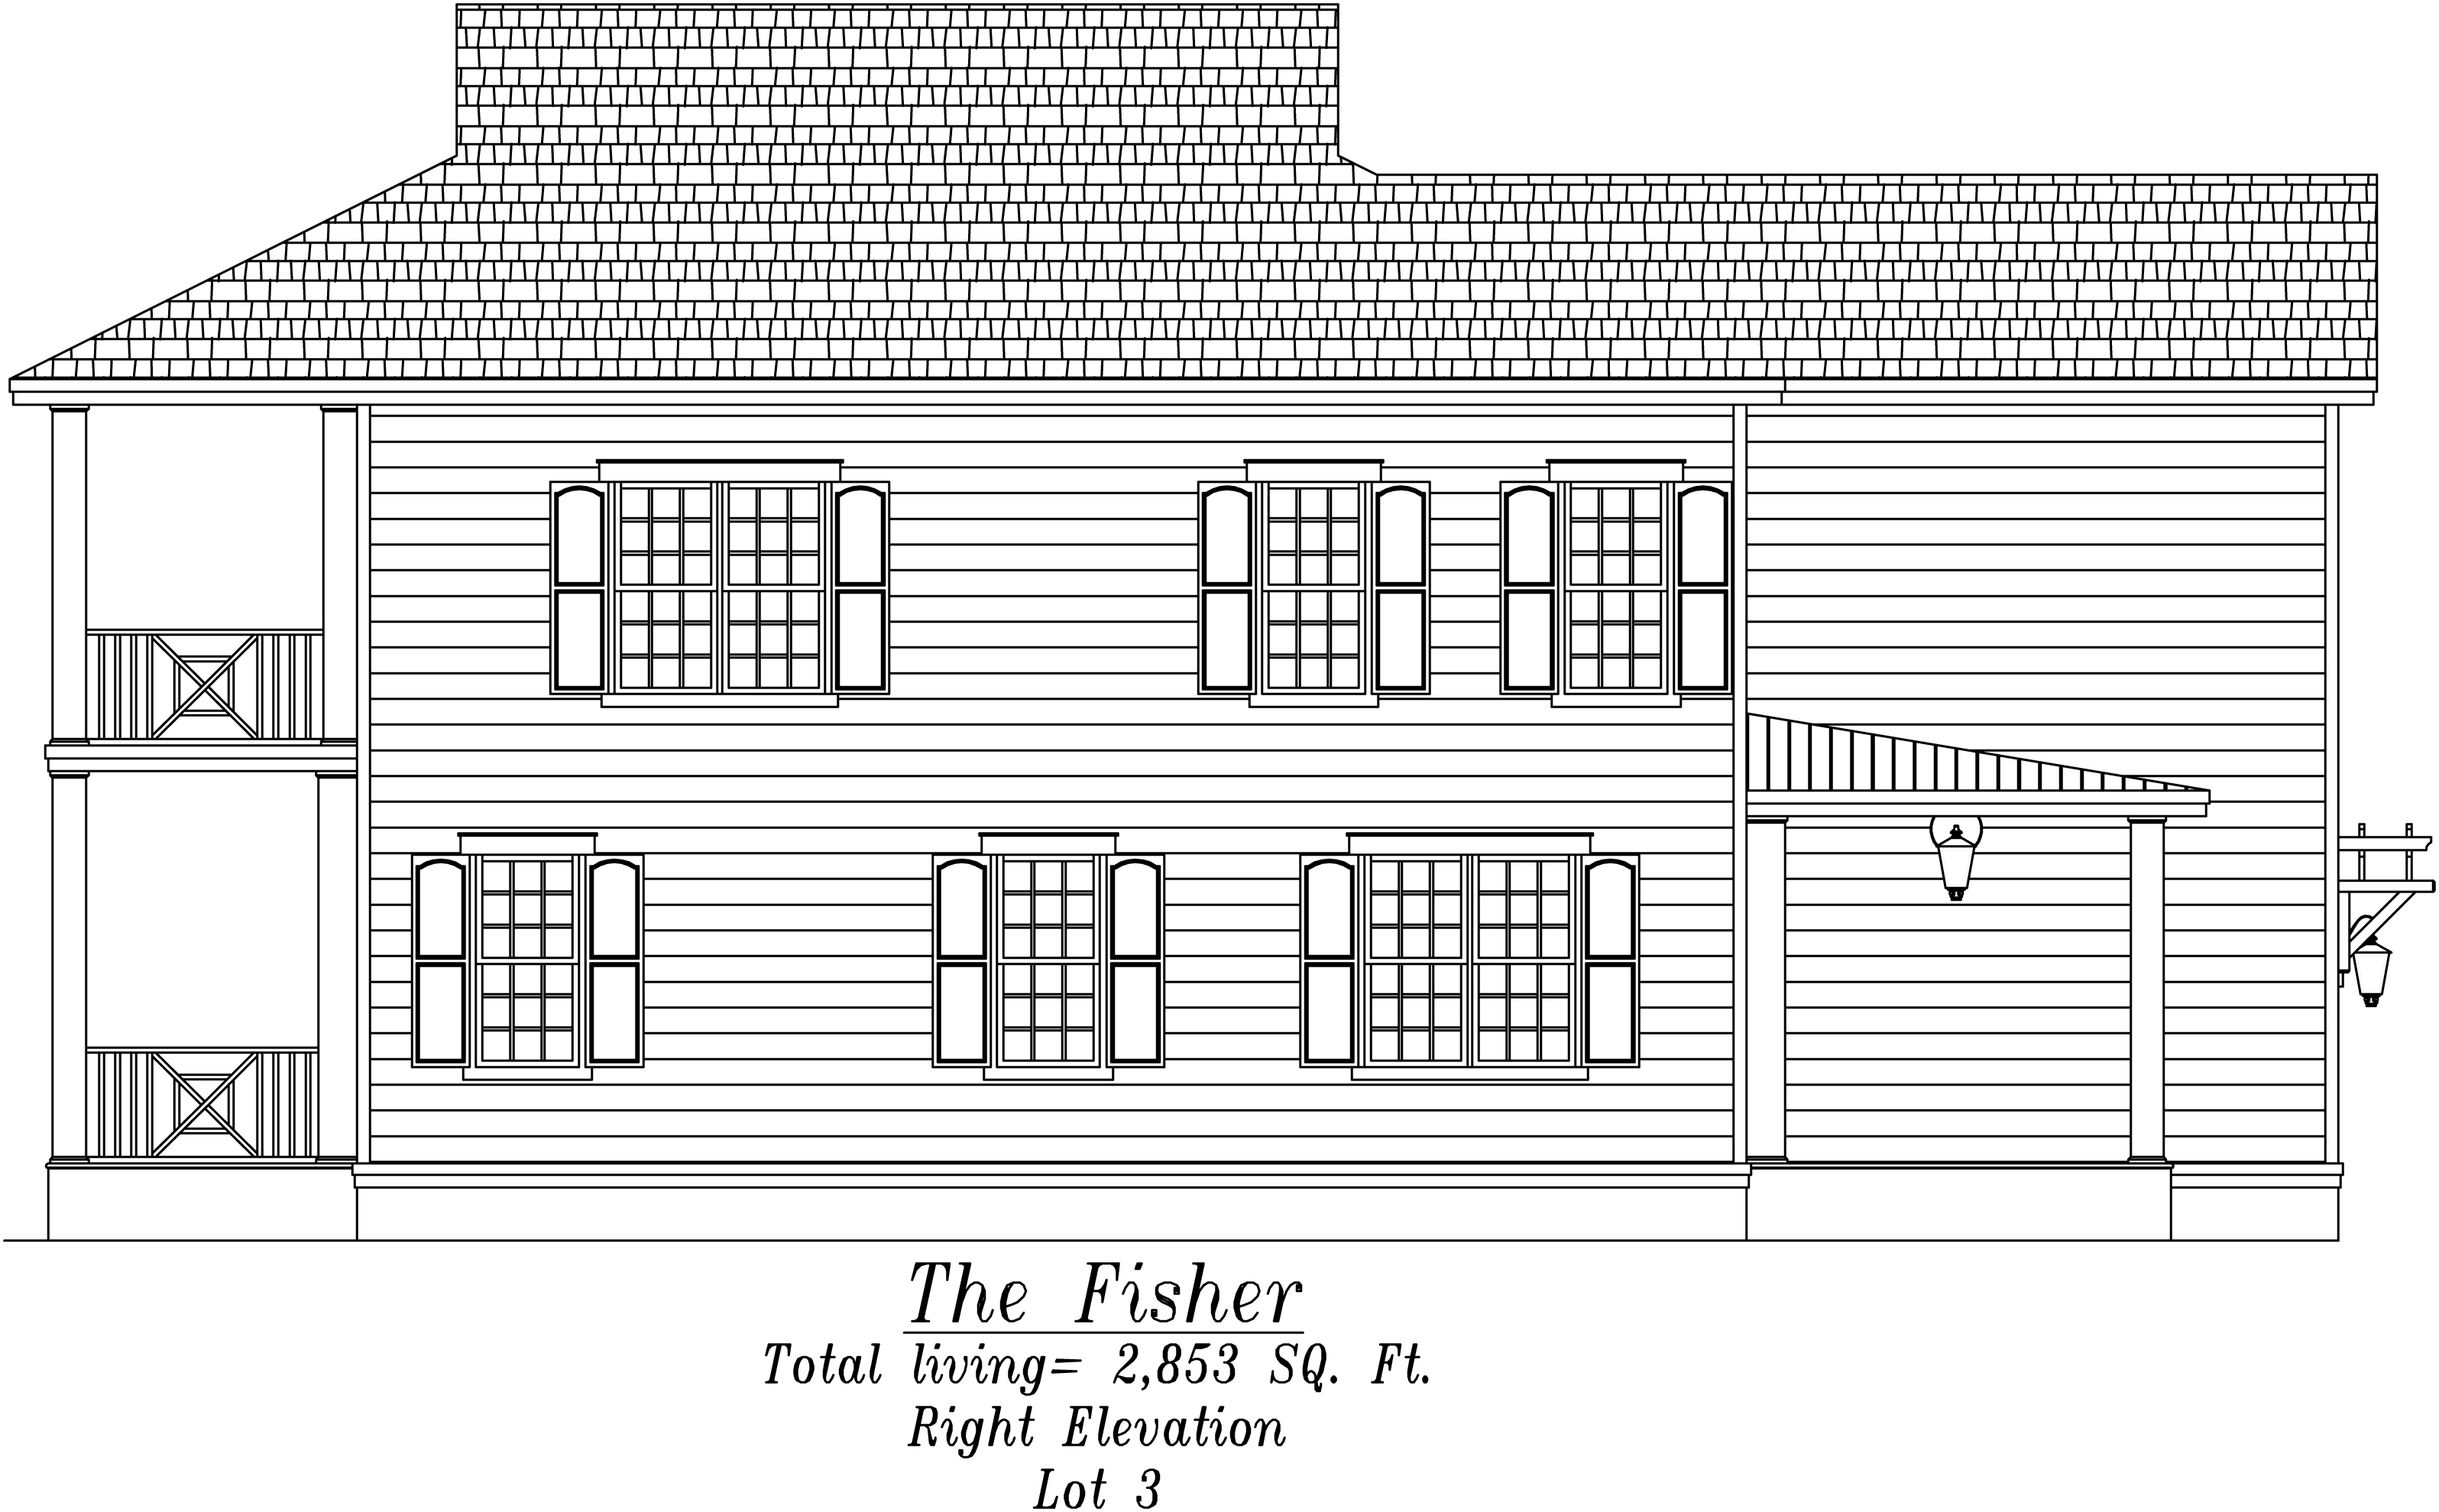 Fisher Right Elevation